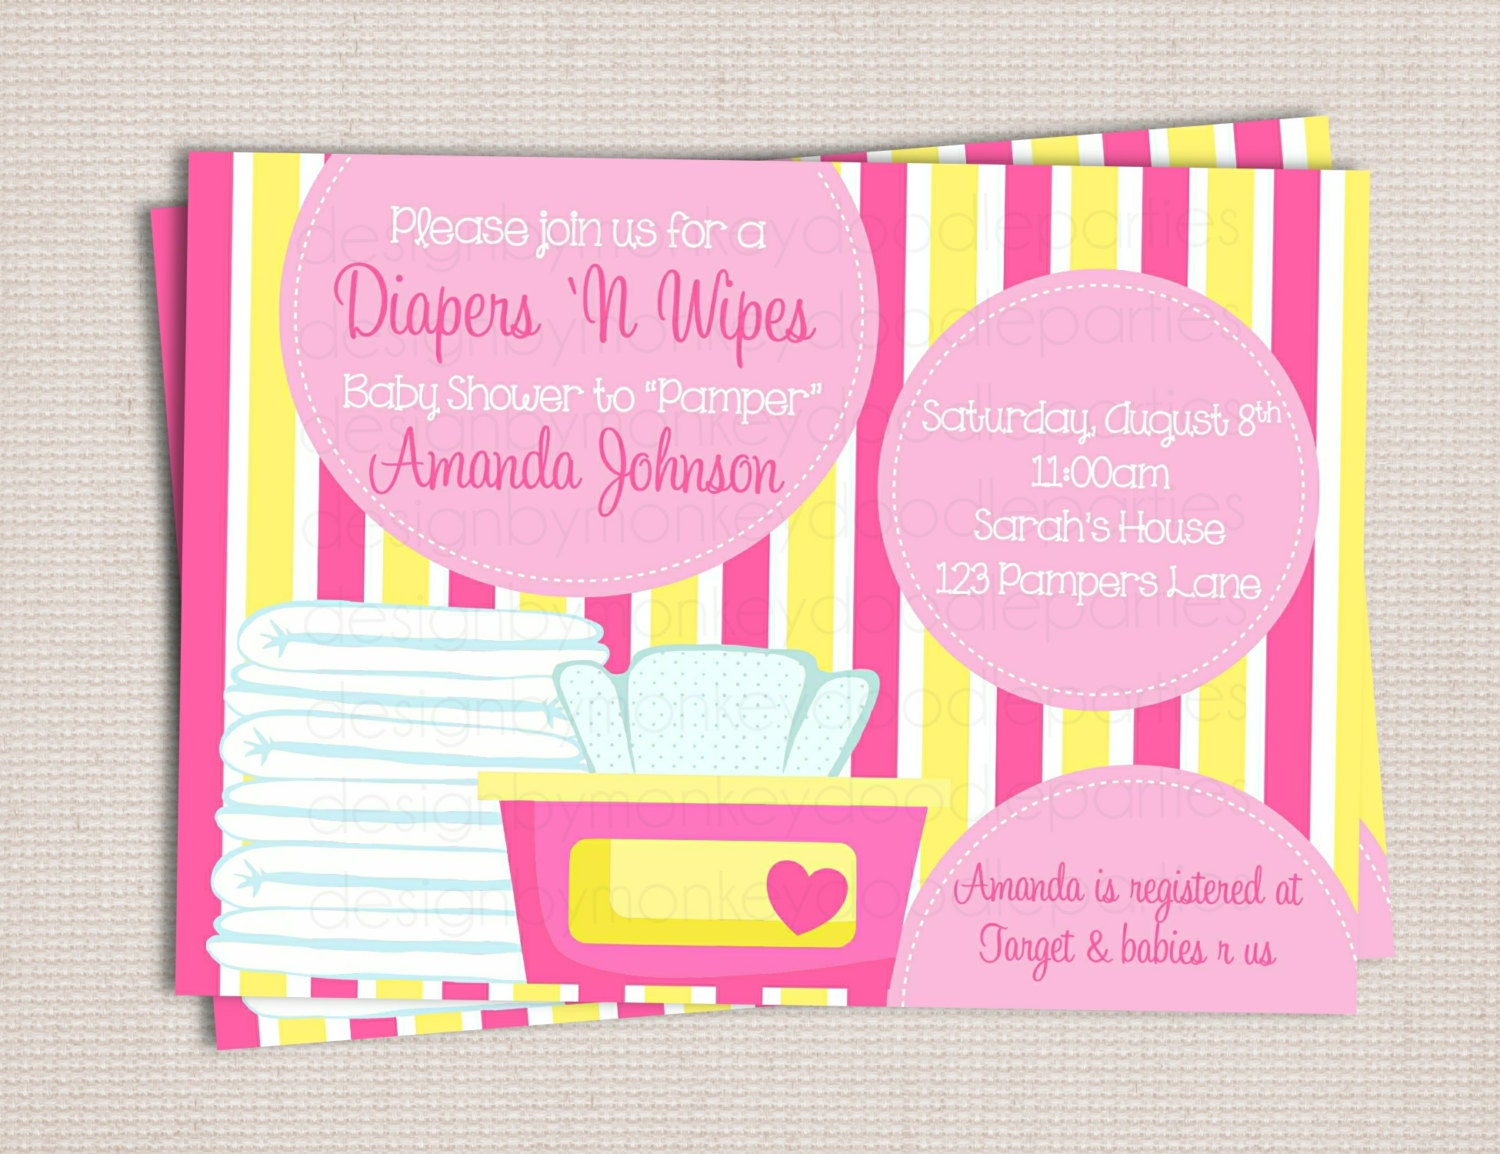 Monkey Girl Invitations is perfect invitations ideas